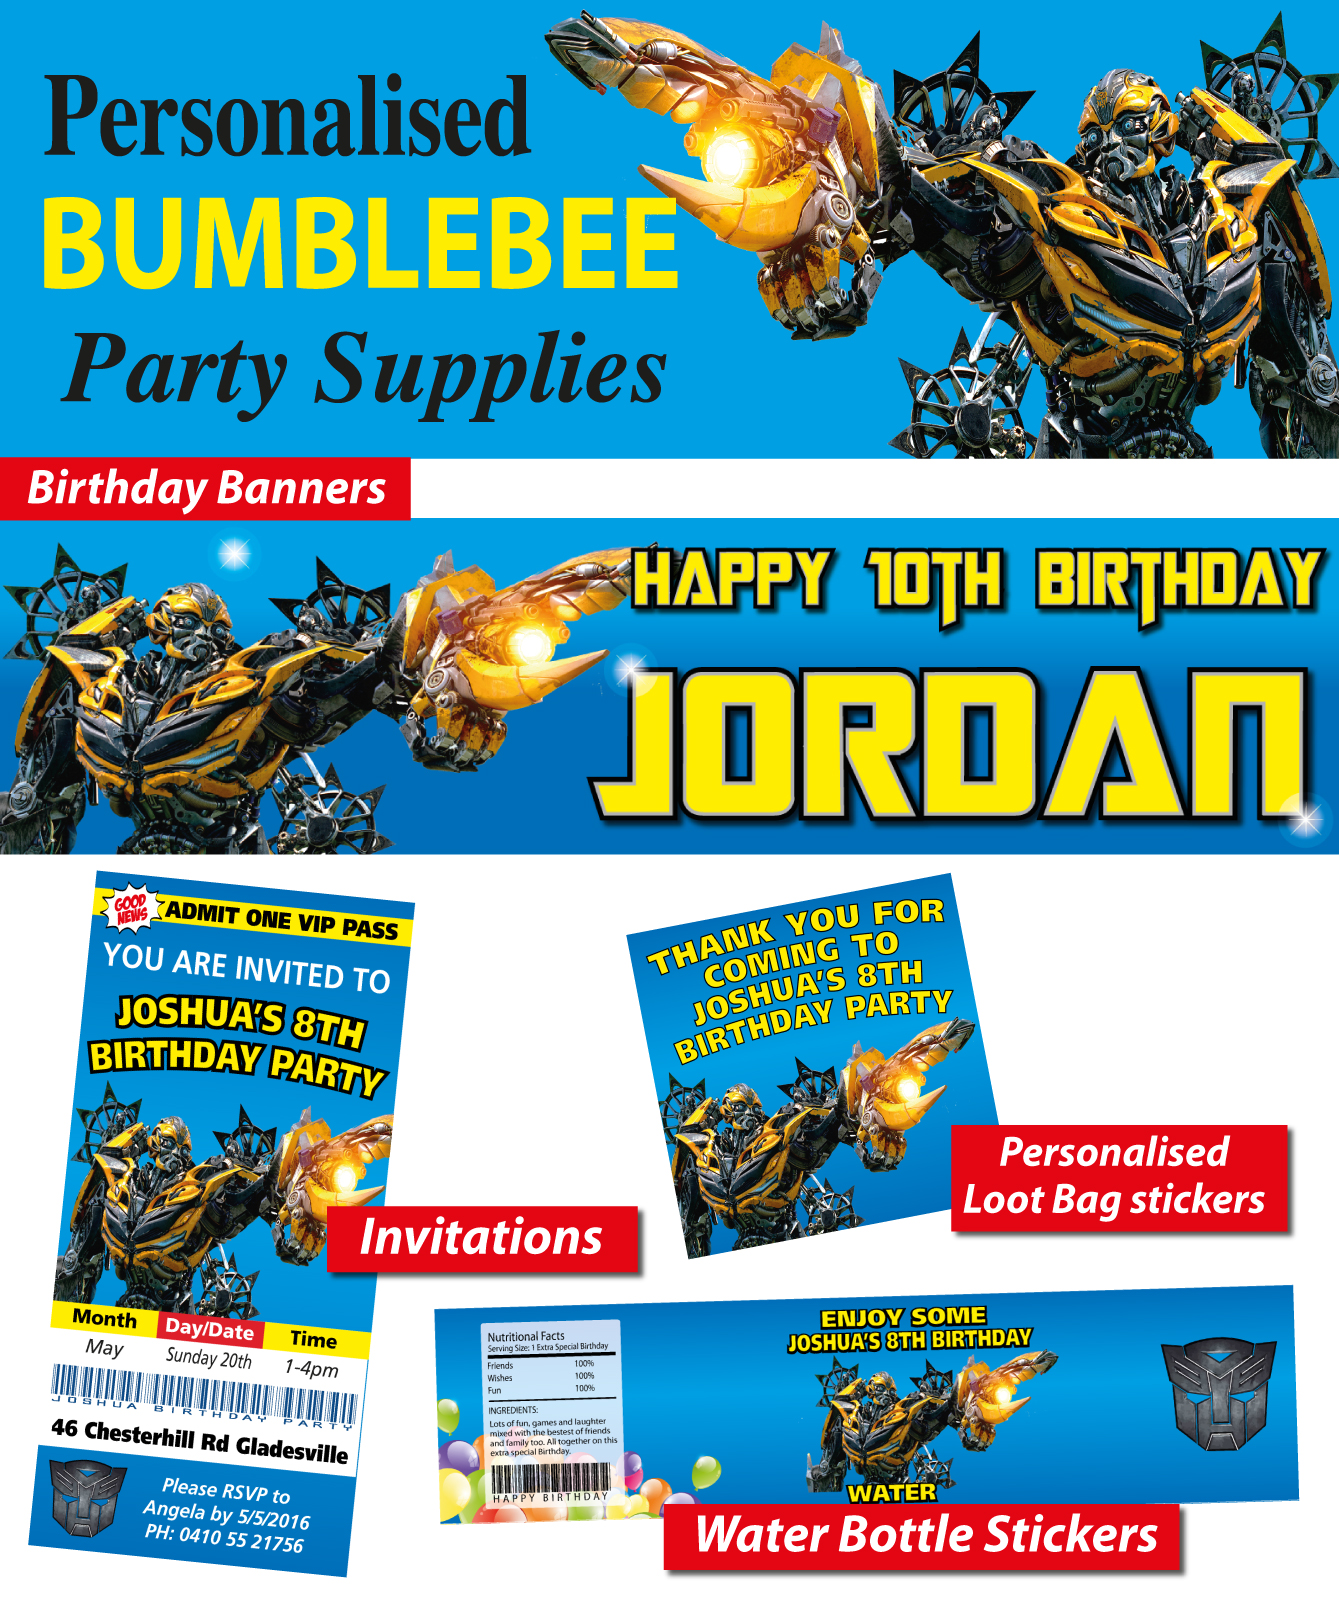 transformers-bumblebee-birthday-supplies-ebay.jpg